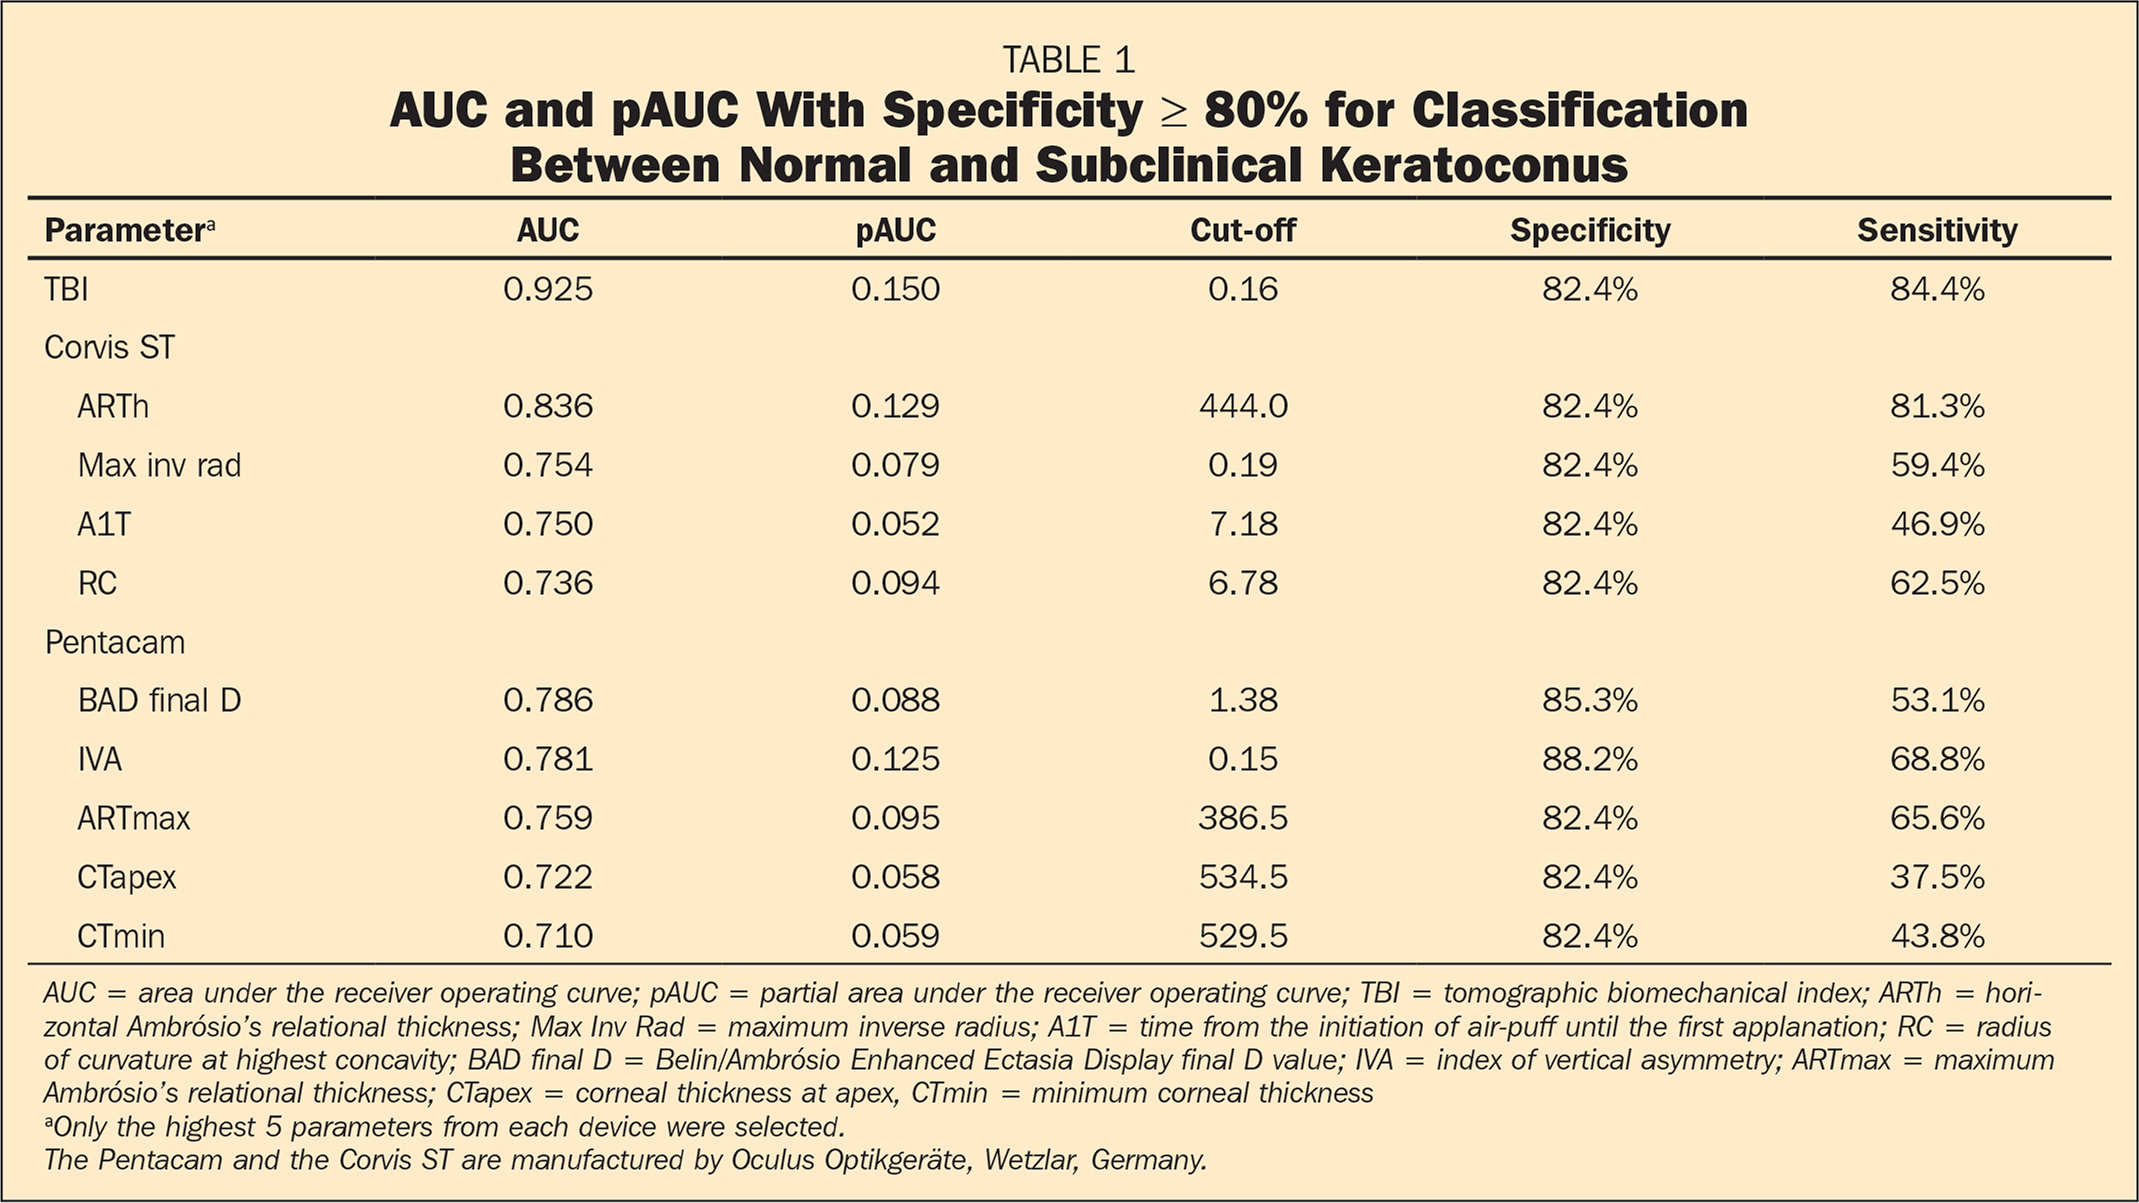 AUC and pAUC With Specificity ≥ 80% for Classification Between Normal and Subclinical Keratoconus